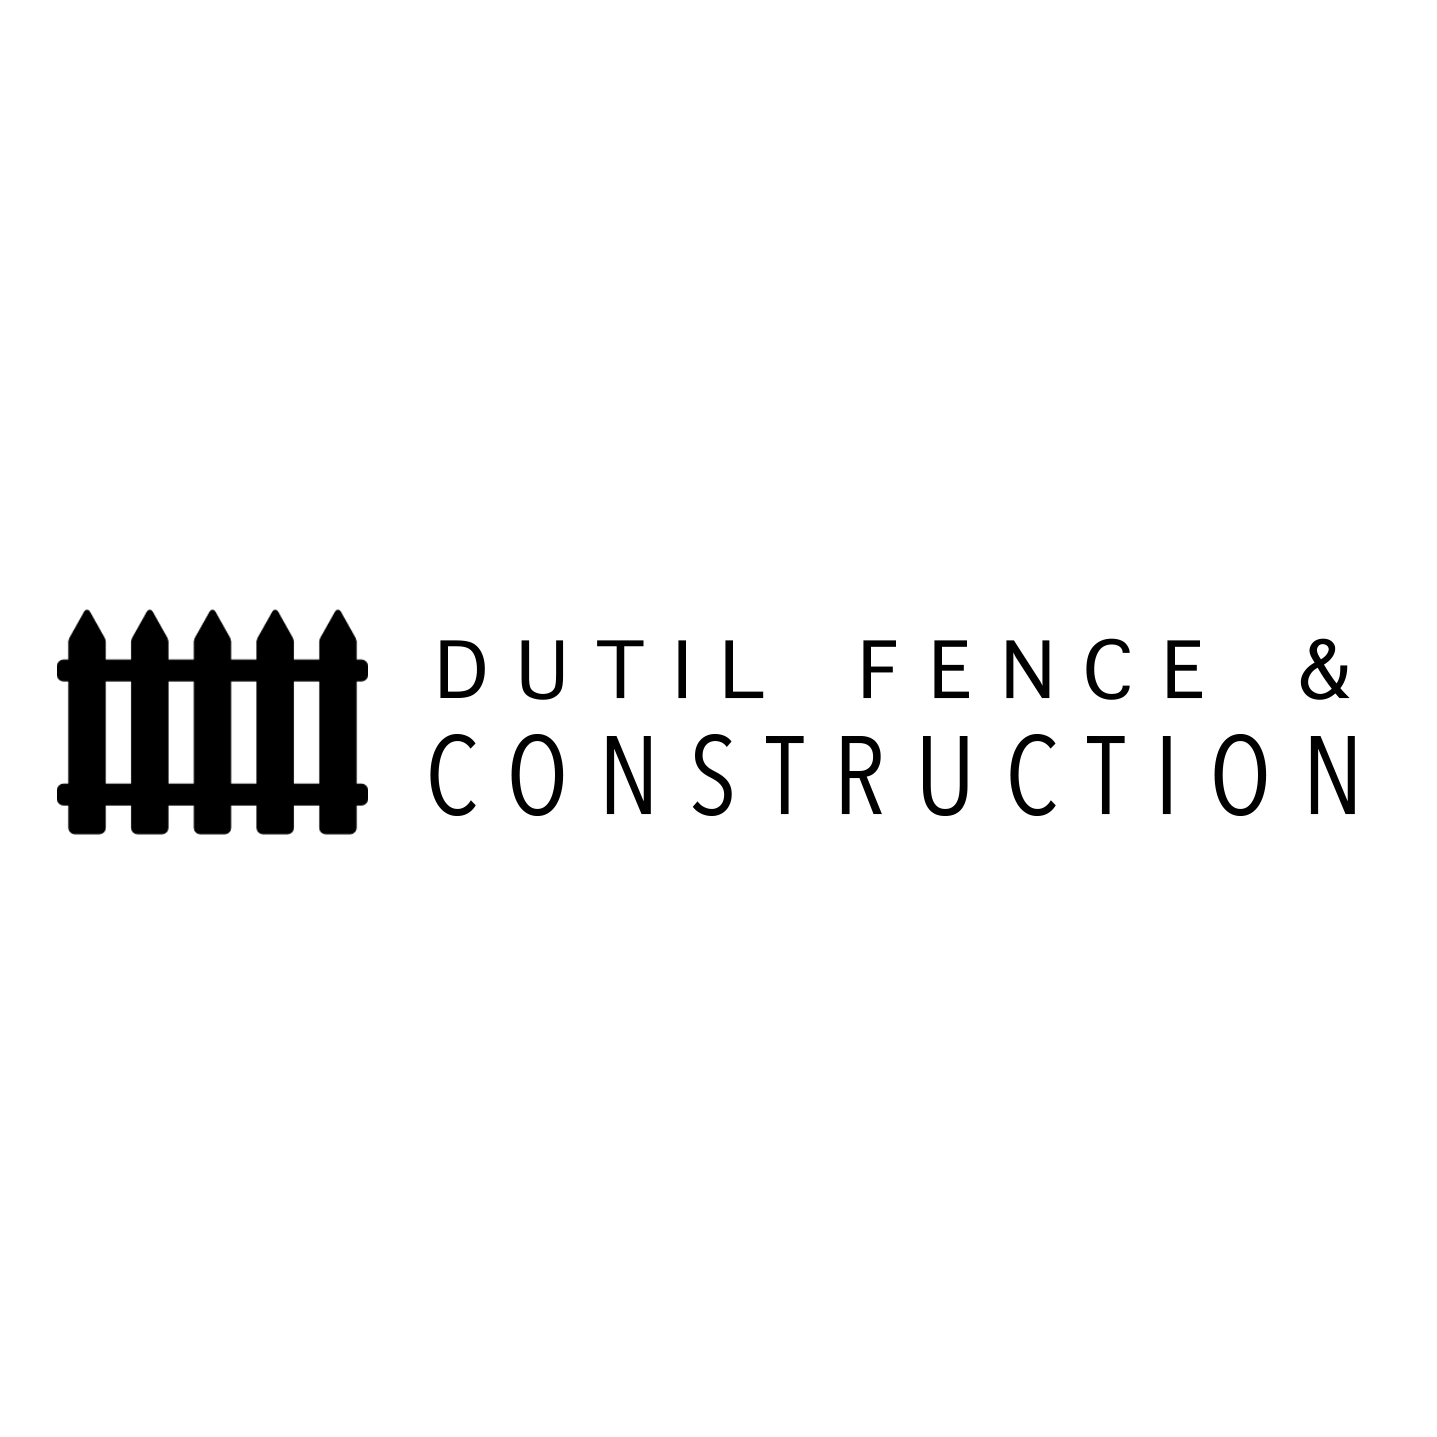 Dutil Fence & Construction image 7